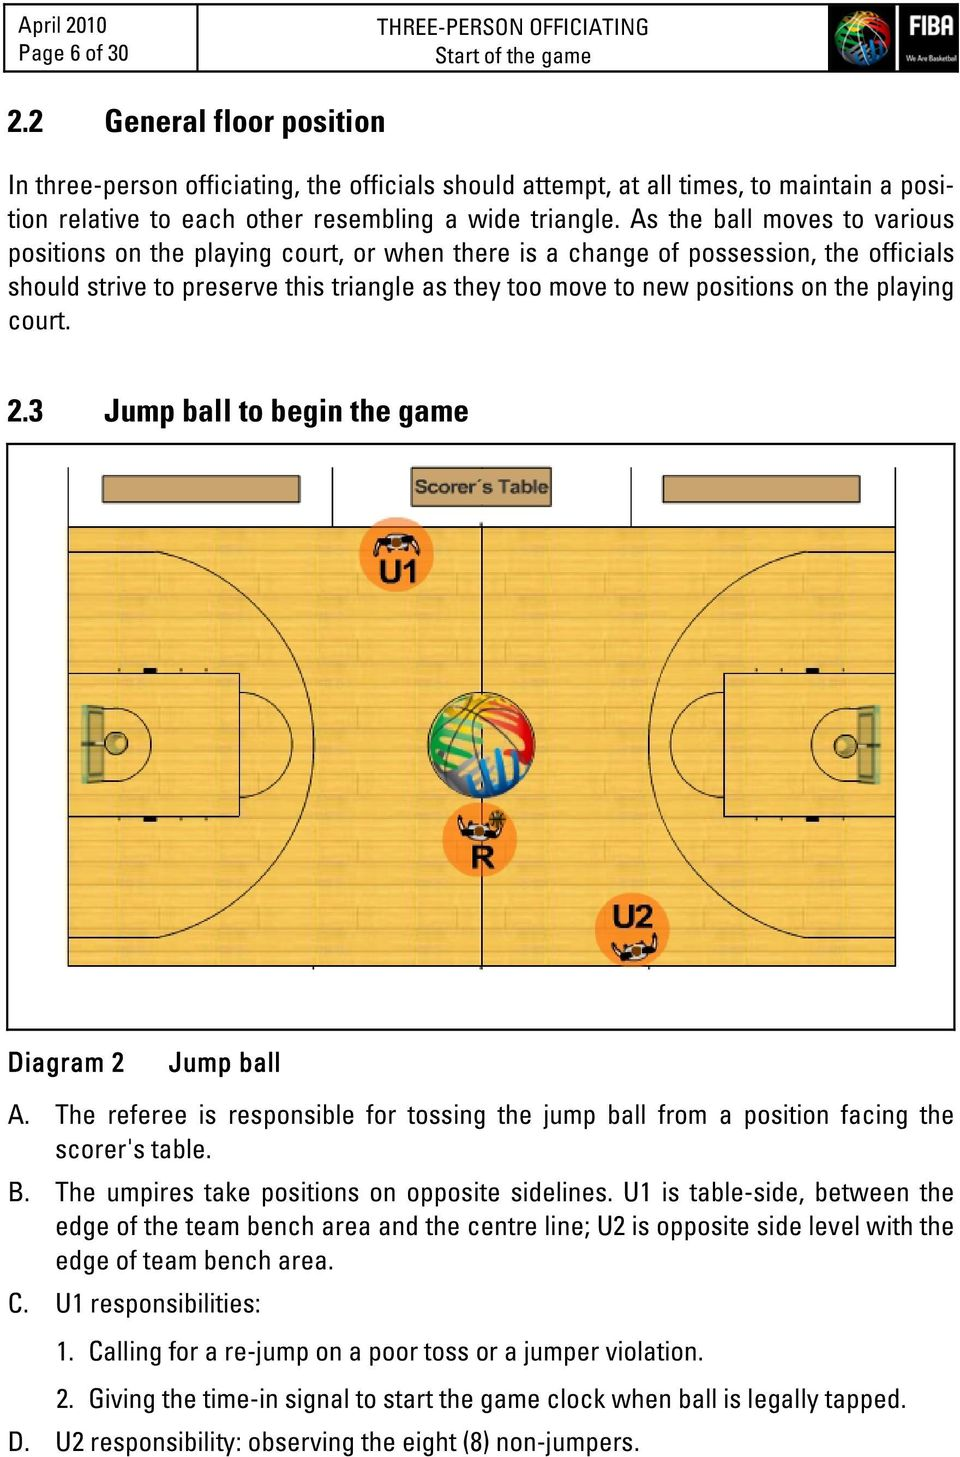 As the ball moves to various positions on the playing court, or when there is a change of possession, the officials should strive to preserve this triangle as they too move to new positions on the